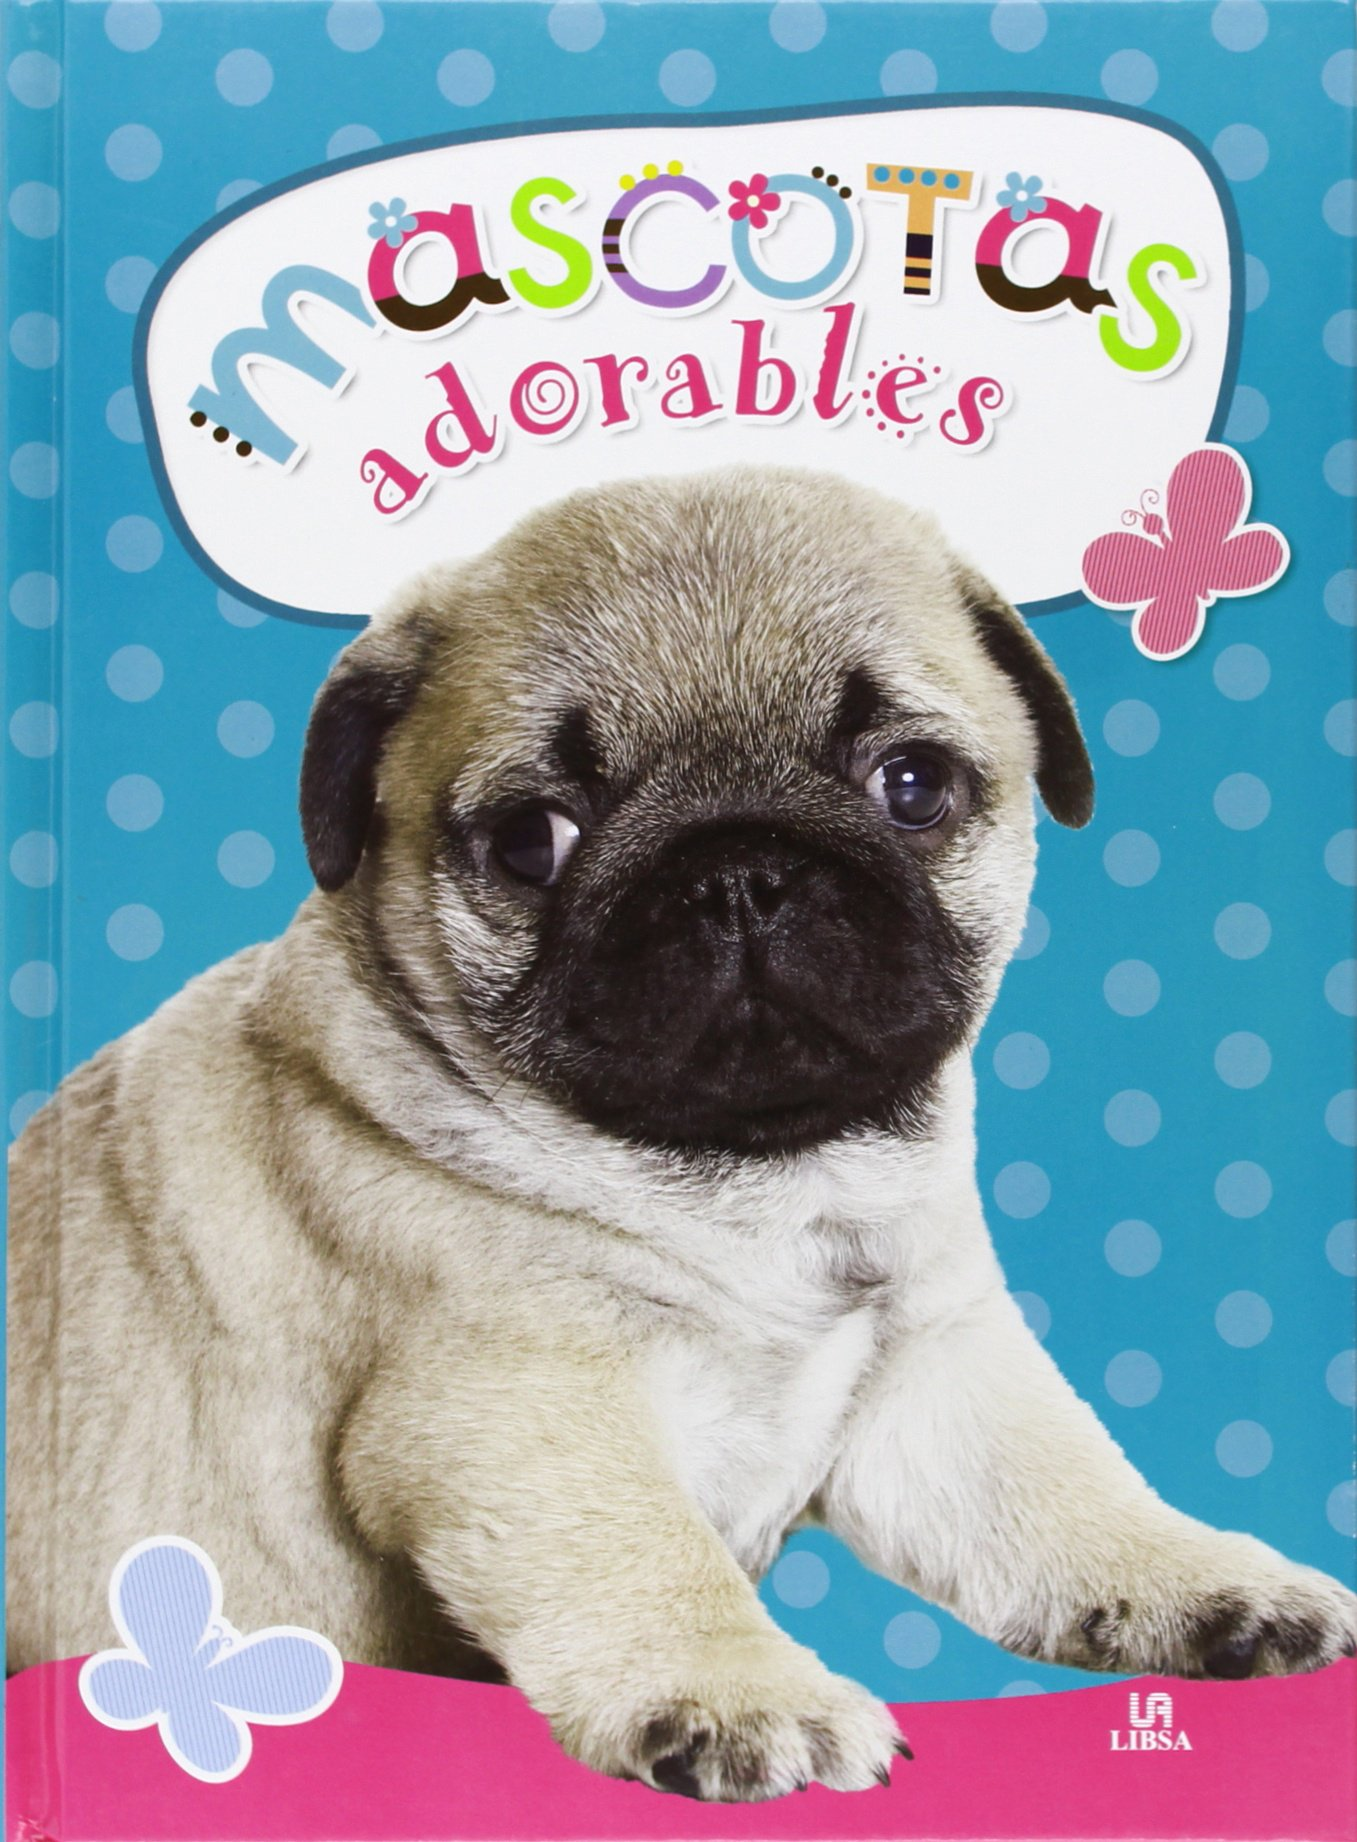 Mascotas Adorables (Spanish) Hardcover – 2014